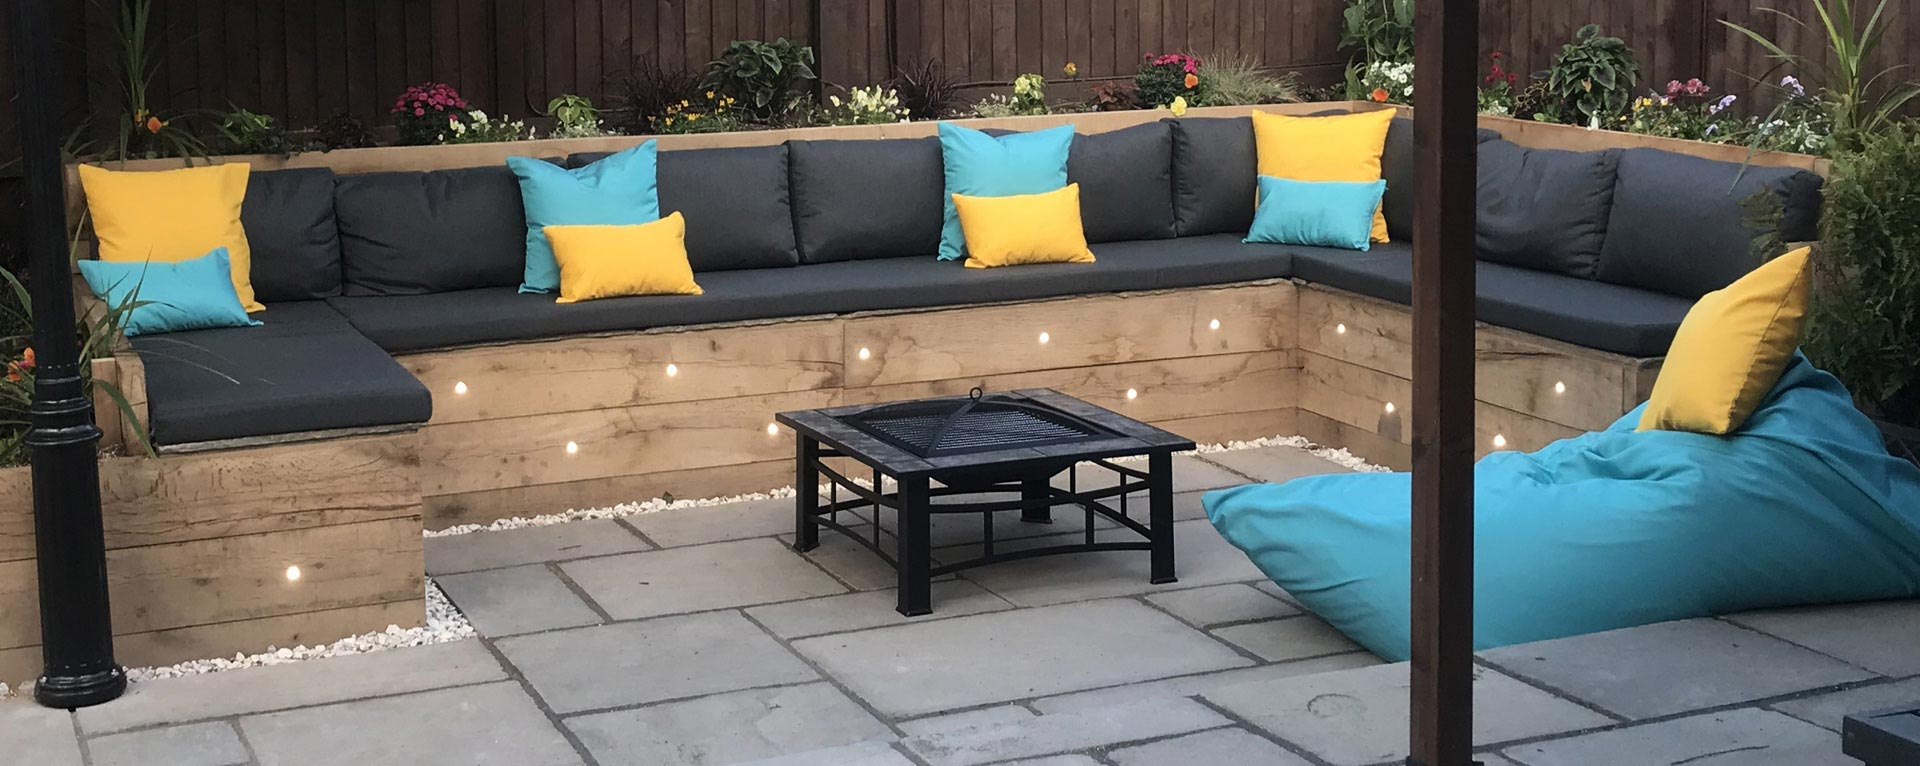 Bespoke Outdoor Cushions for garden and patio furniture